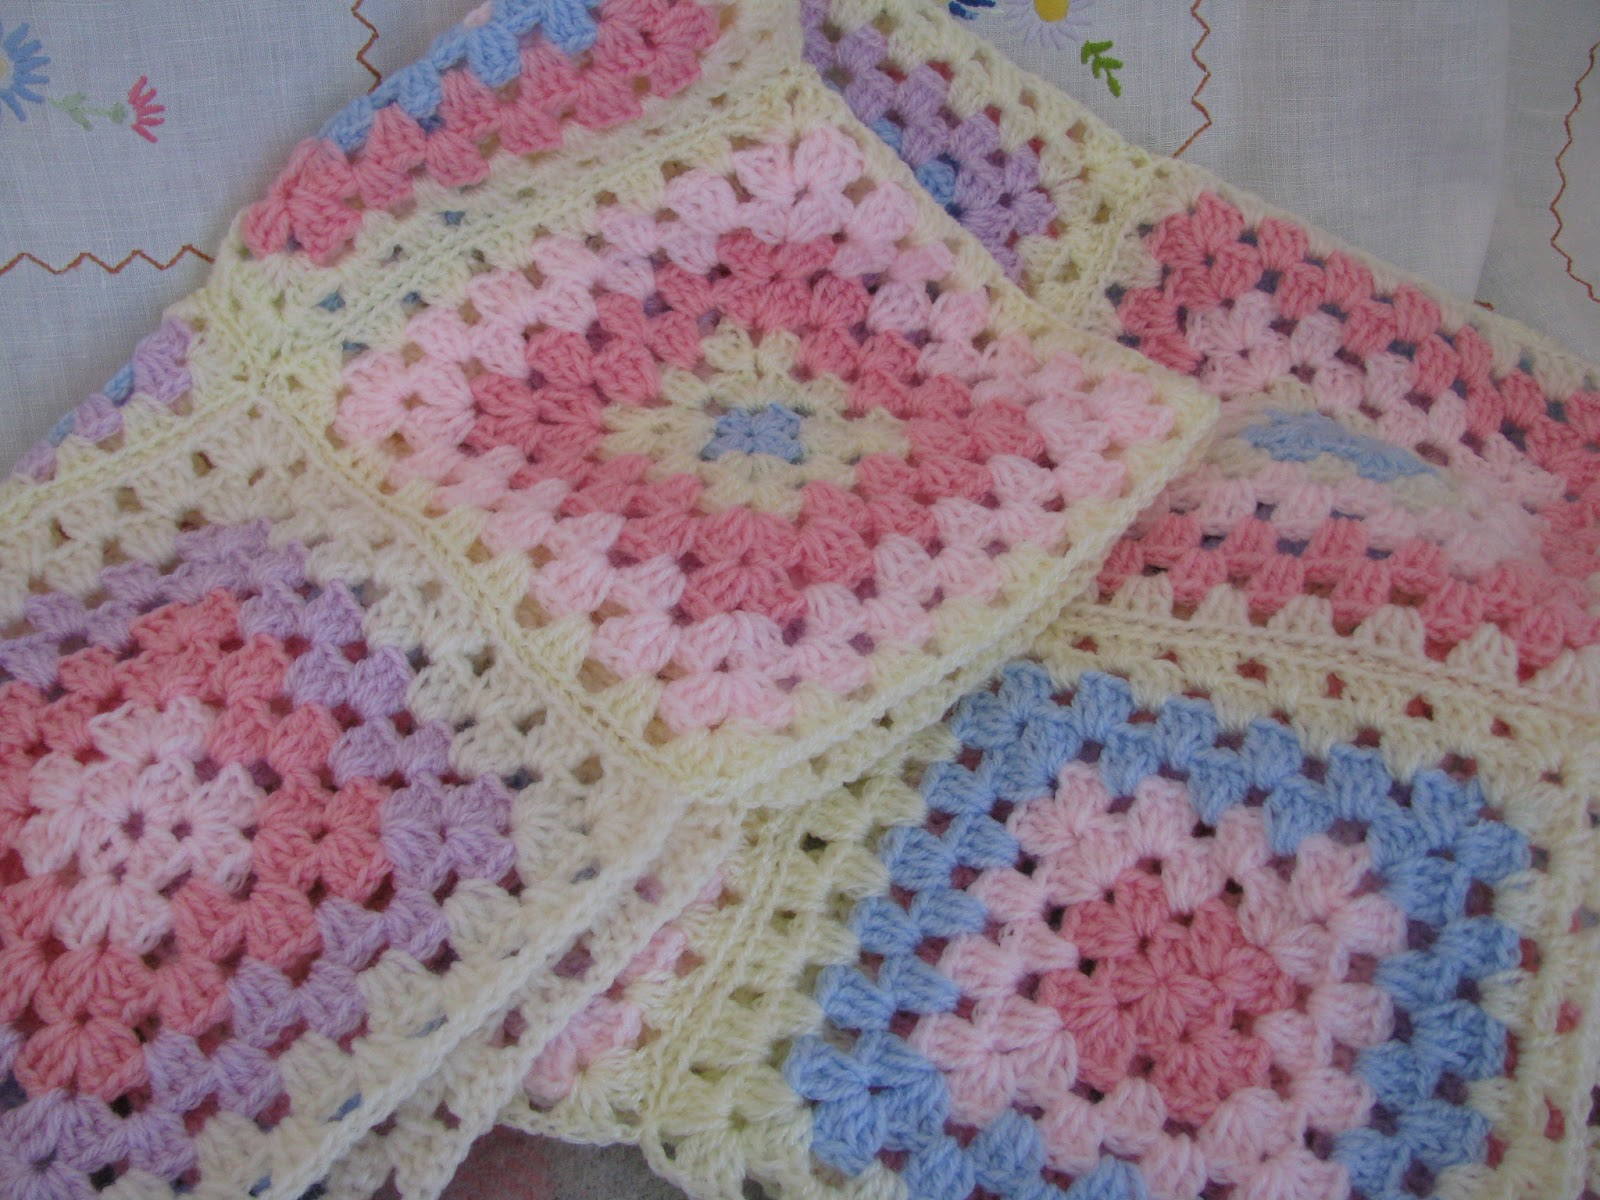 Crocheting Baby Blanket : Shortbread & Ginger: Crochet Baby Blanket